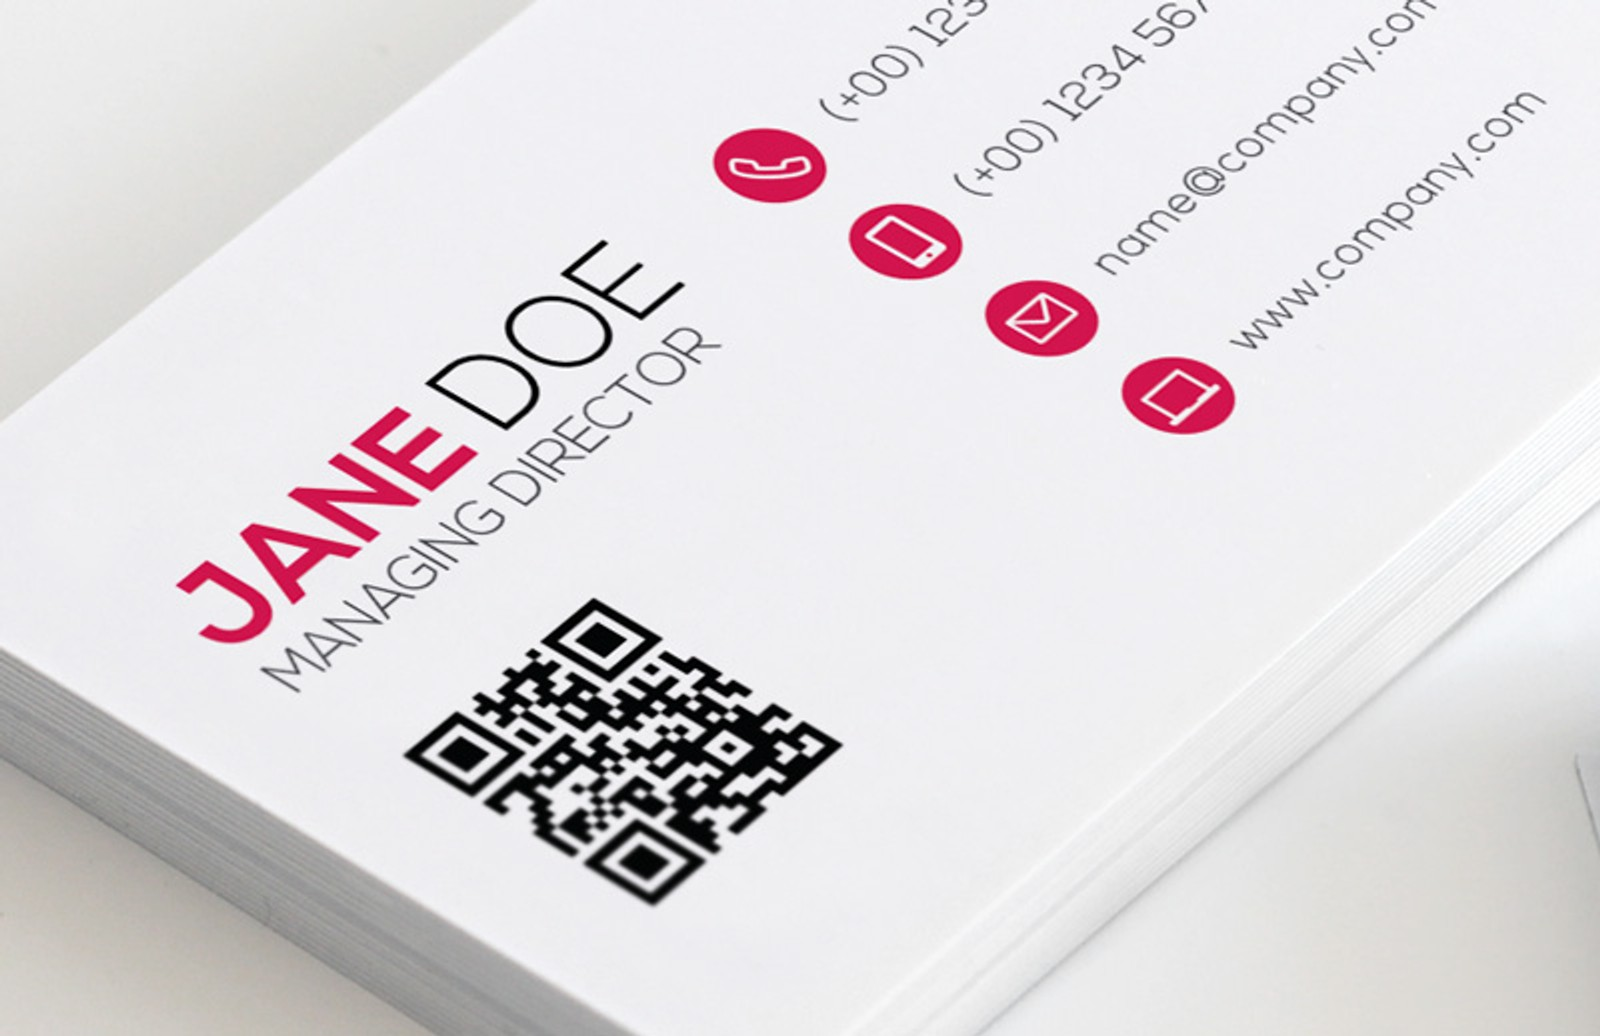 Qr code business card template vol 2 medialoot qr code business card vol 2 preview 1 fbccfo Choice Image